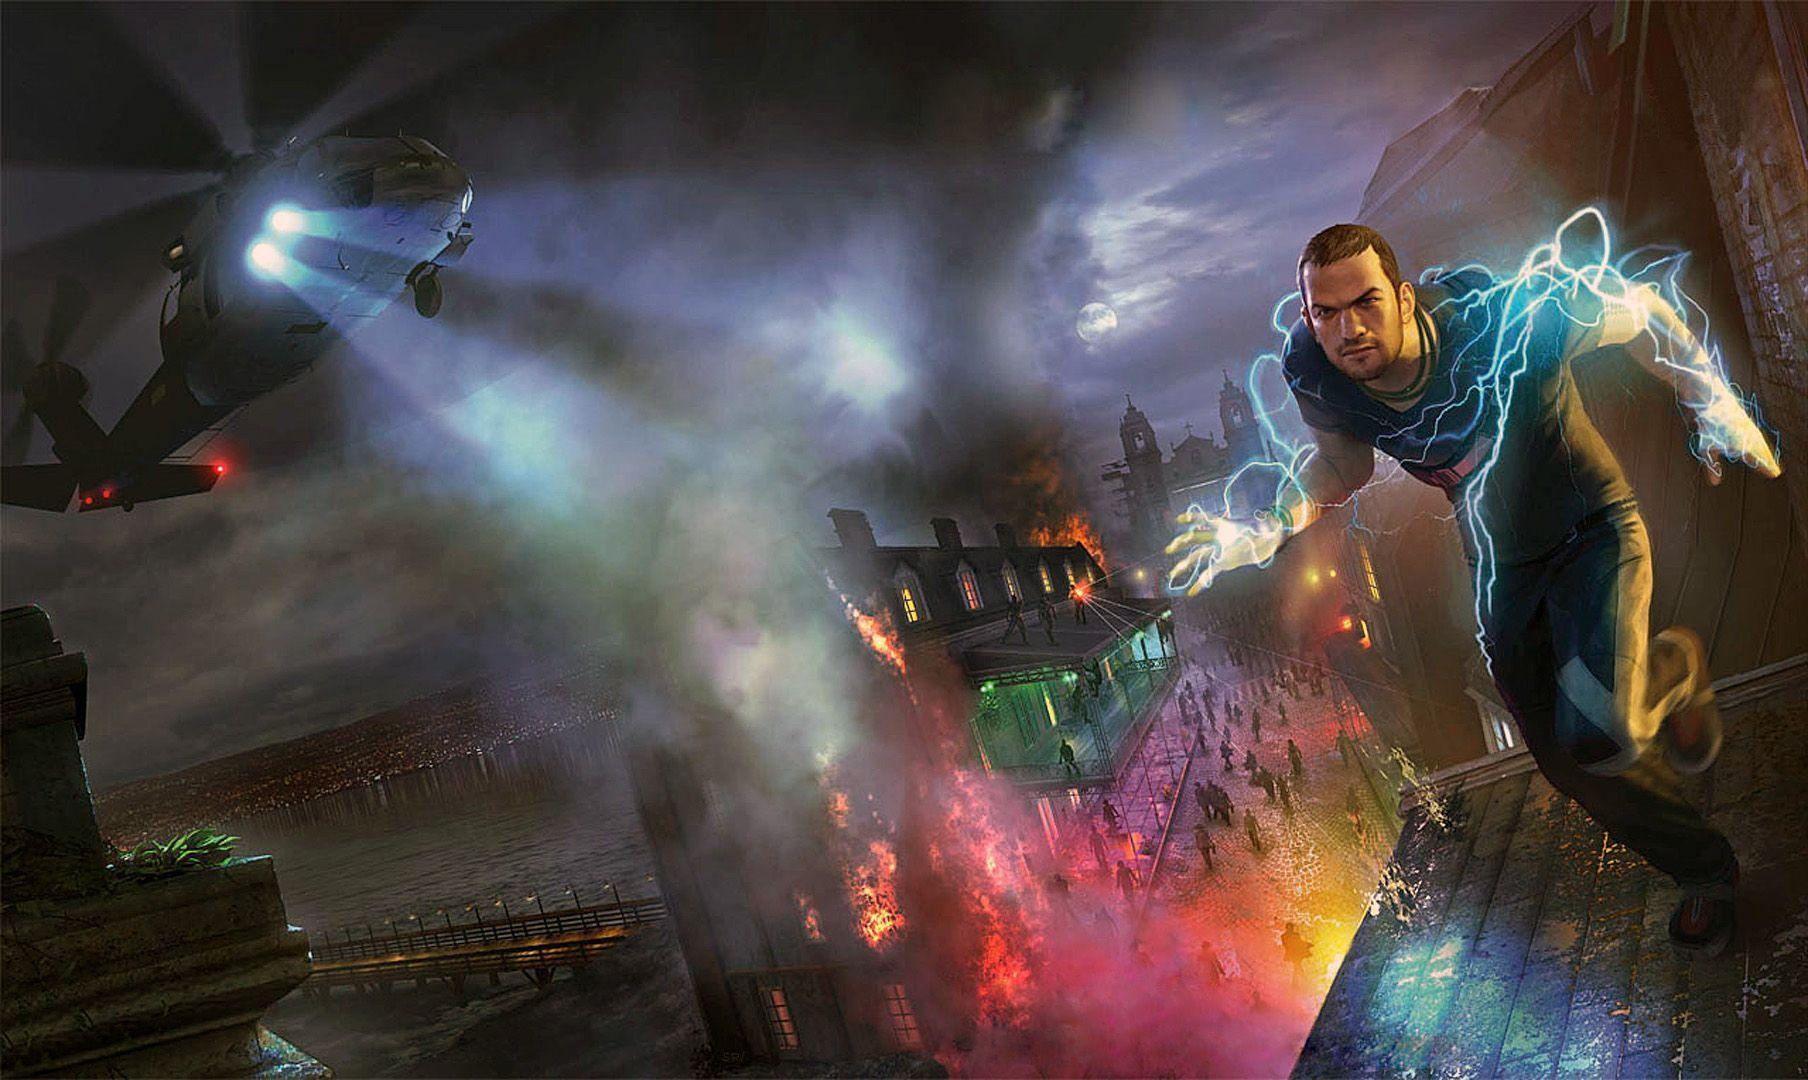 FHDQ Wallpapers: Infamous 2 Wallpapers, Infamous 2 Backgrounds For